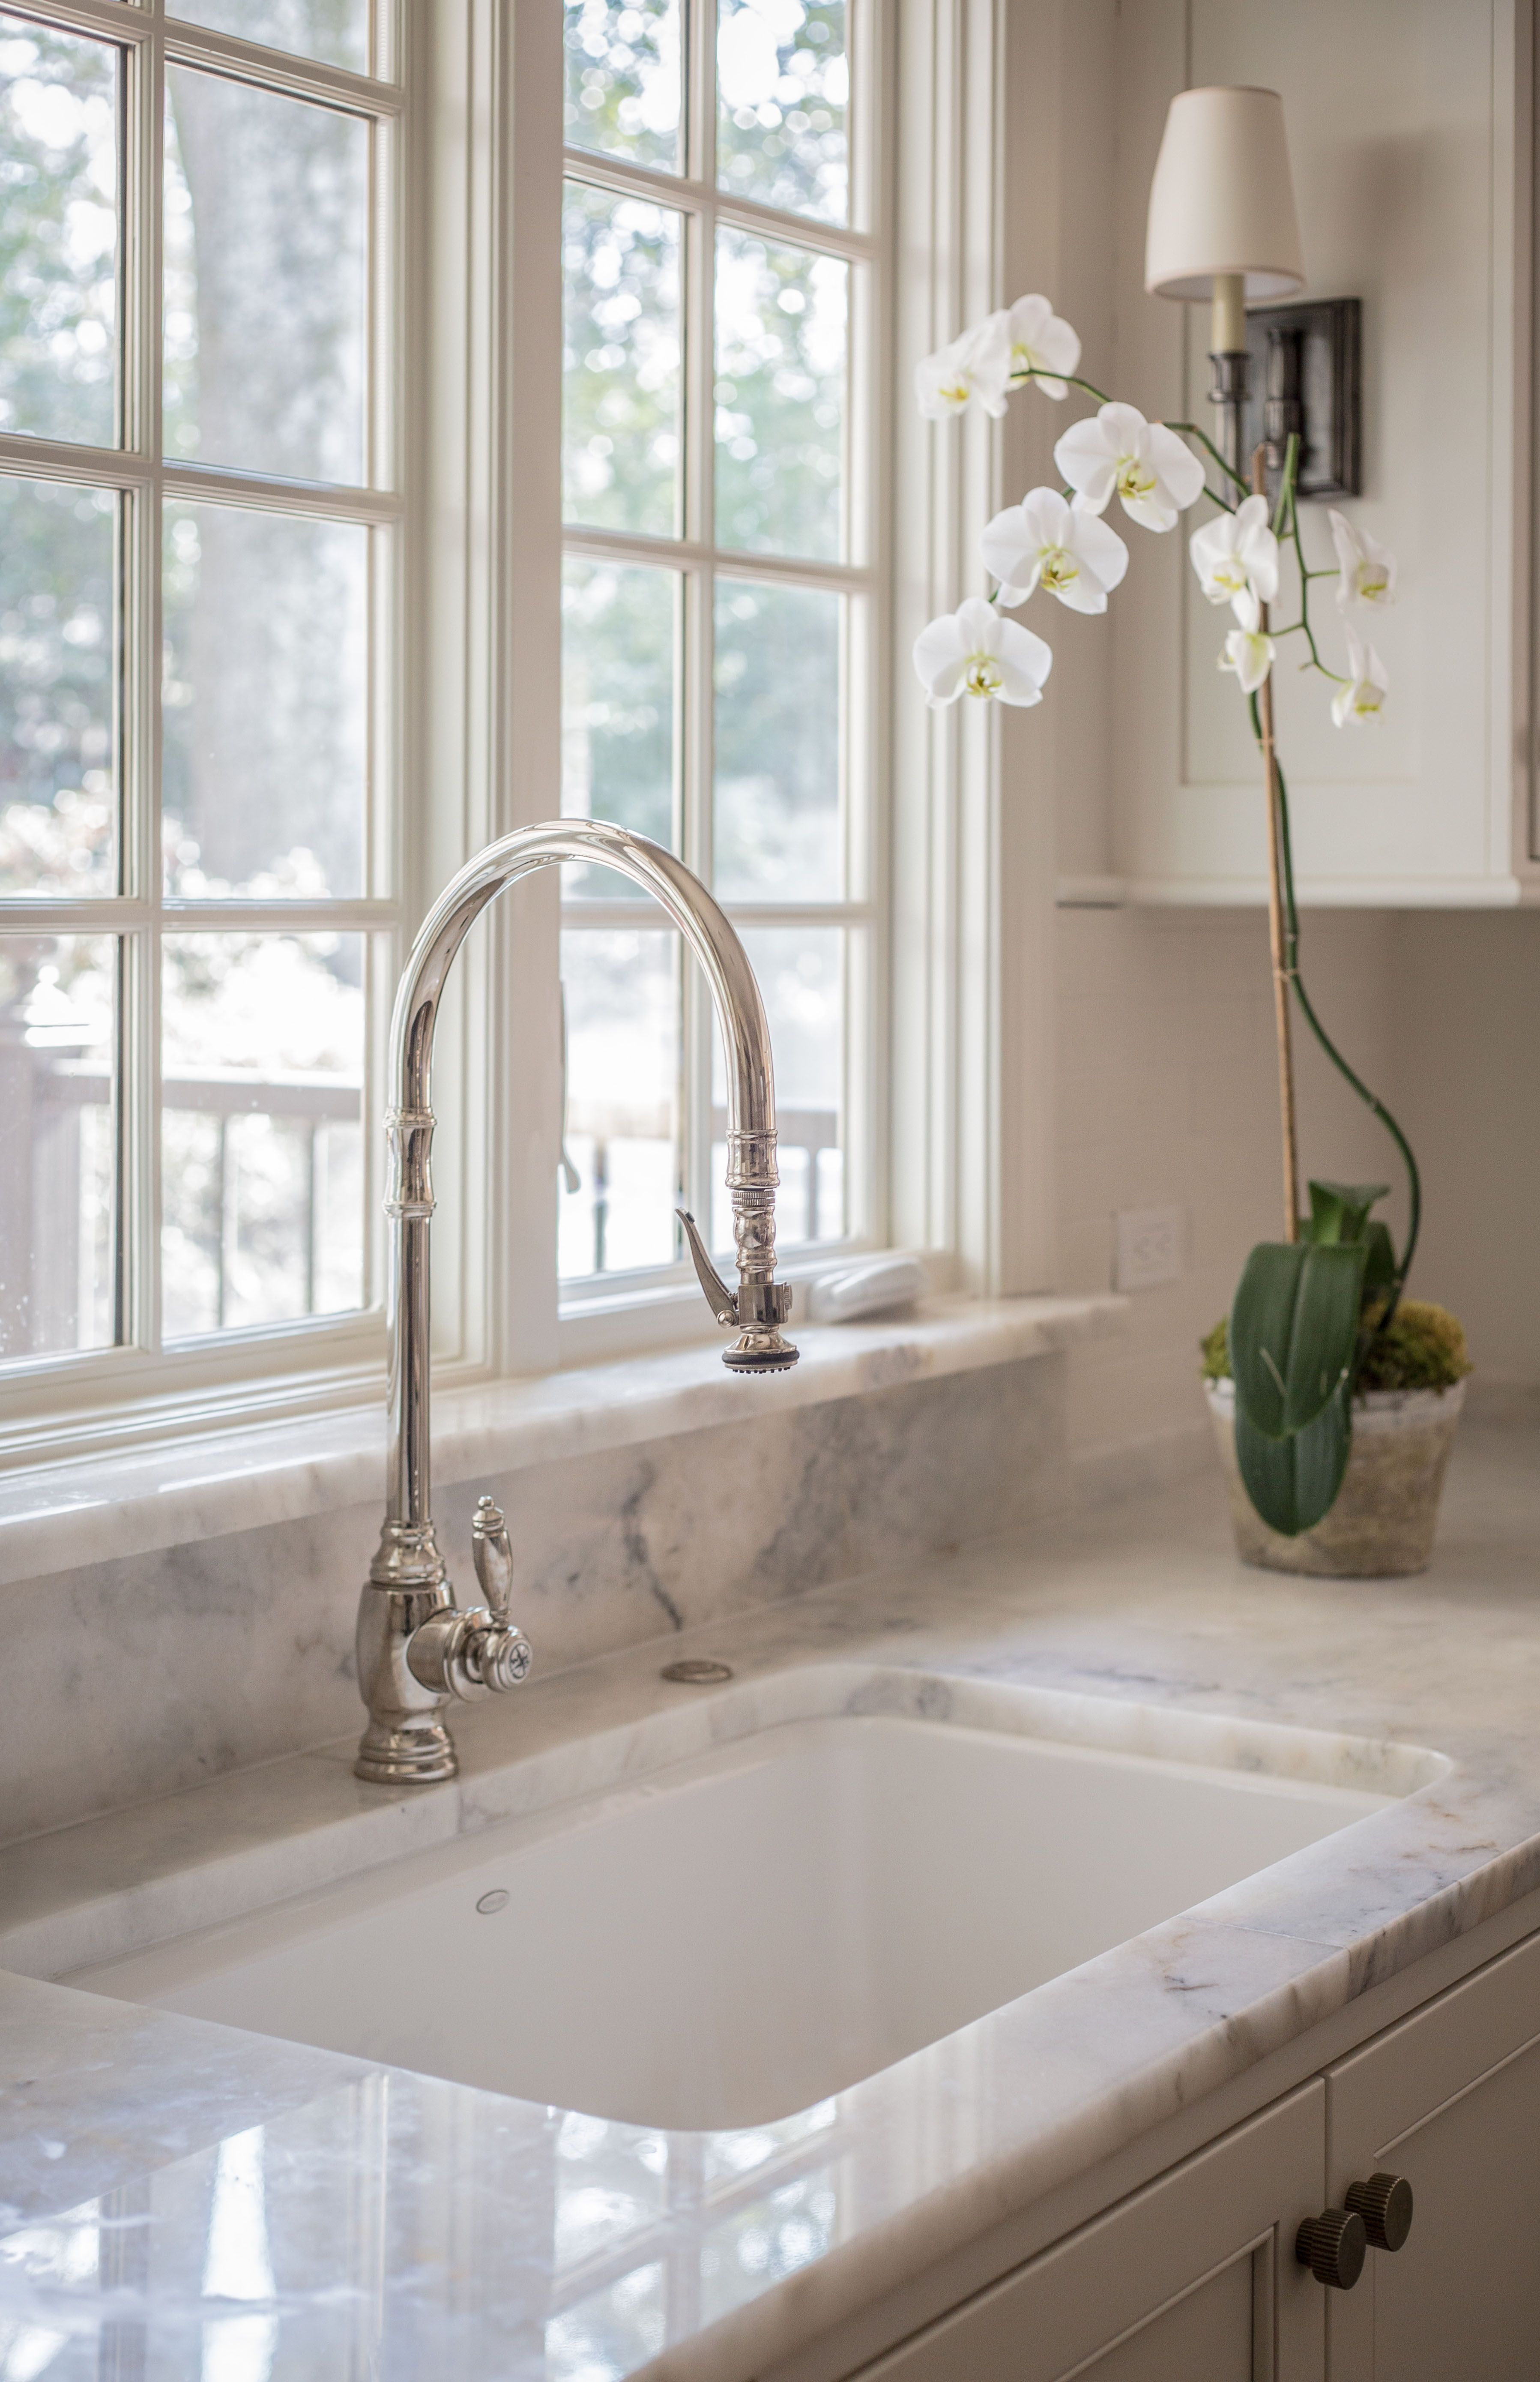 The Story Of How White Lamps Will Change Your Winter Decorations Undermount Kitchen Sinks Kitchen Faucet Kitchen Countertops